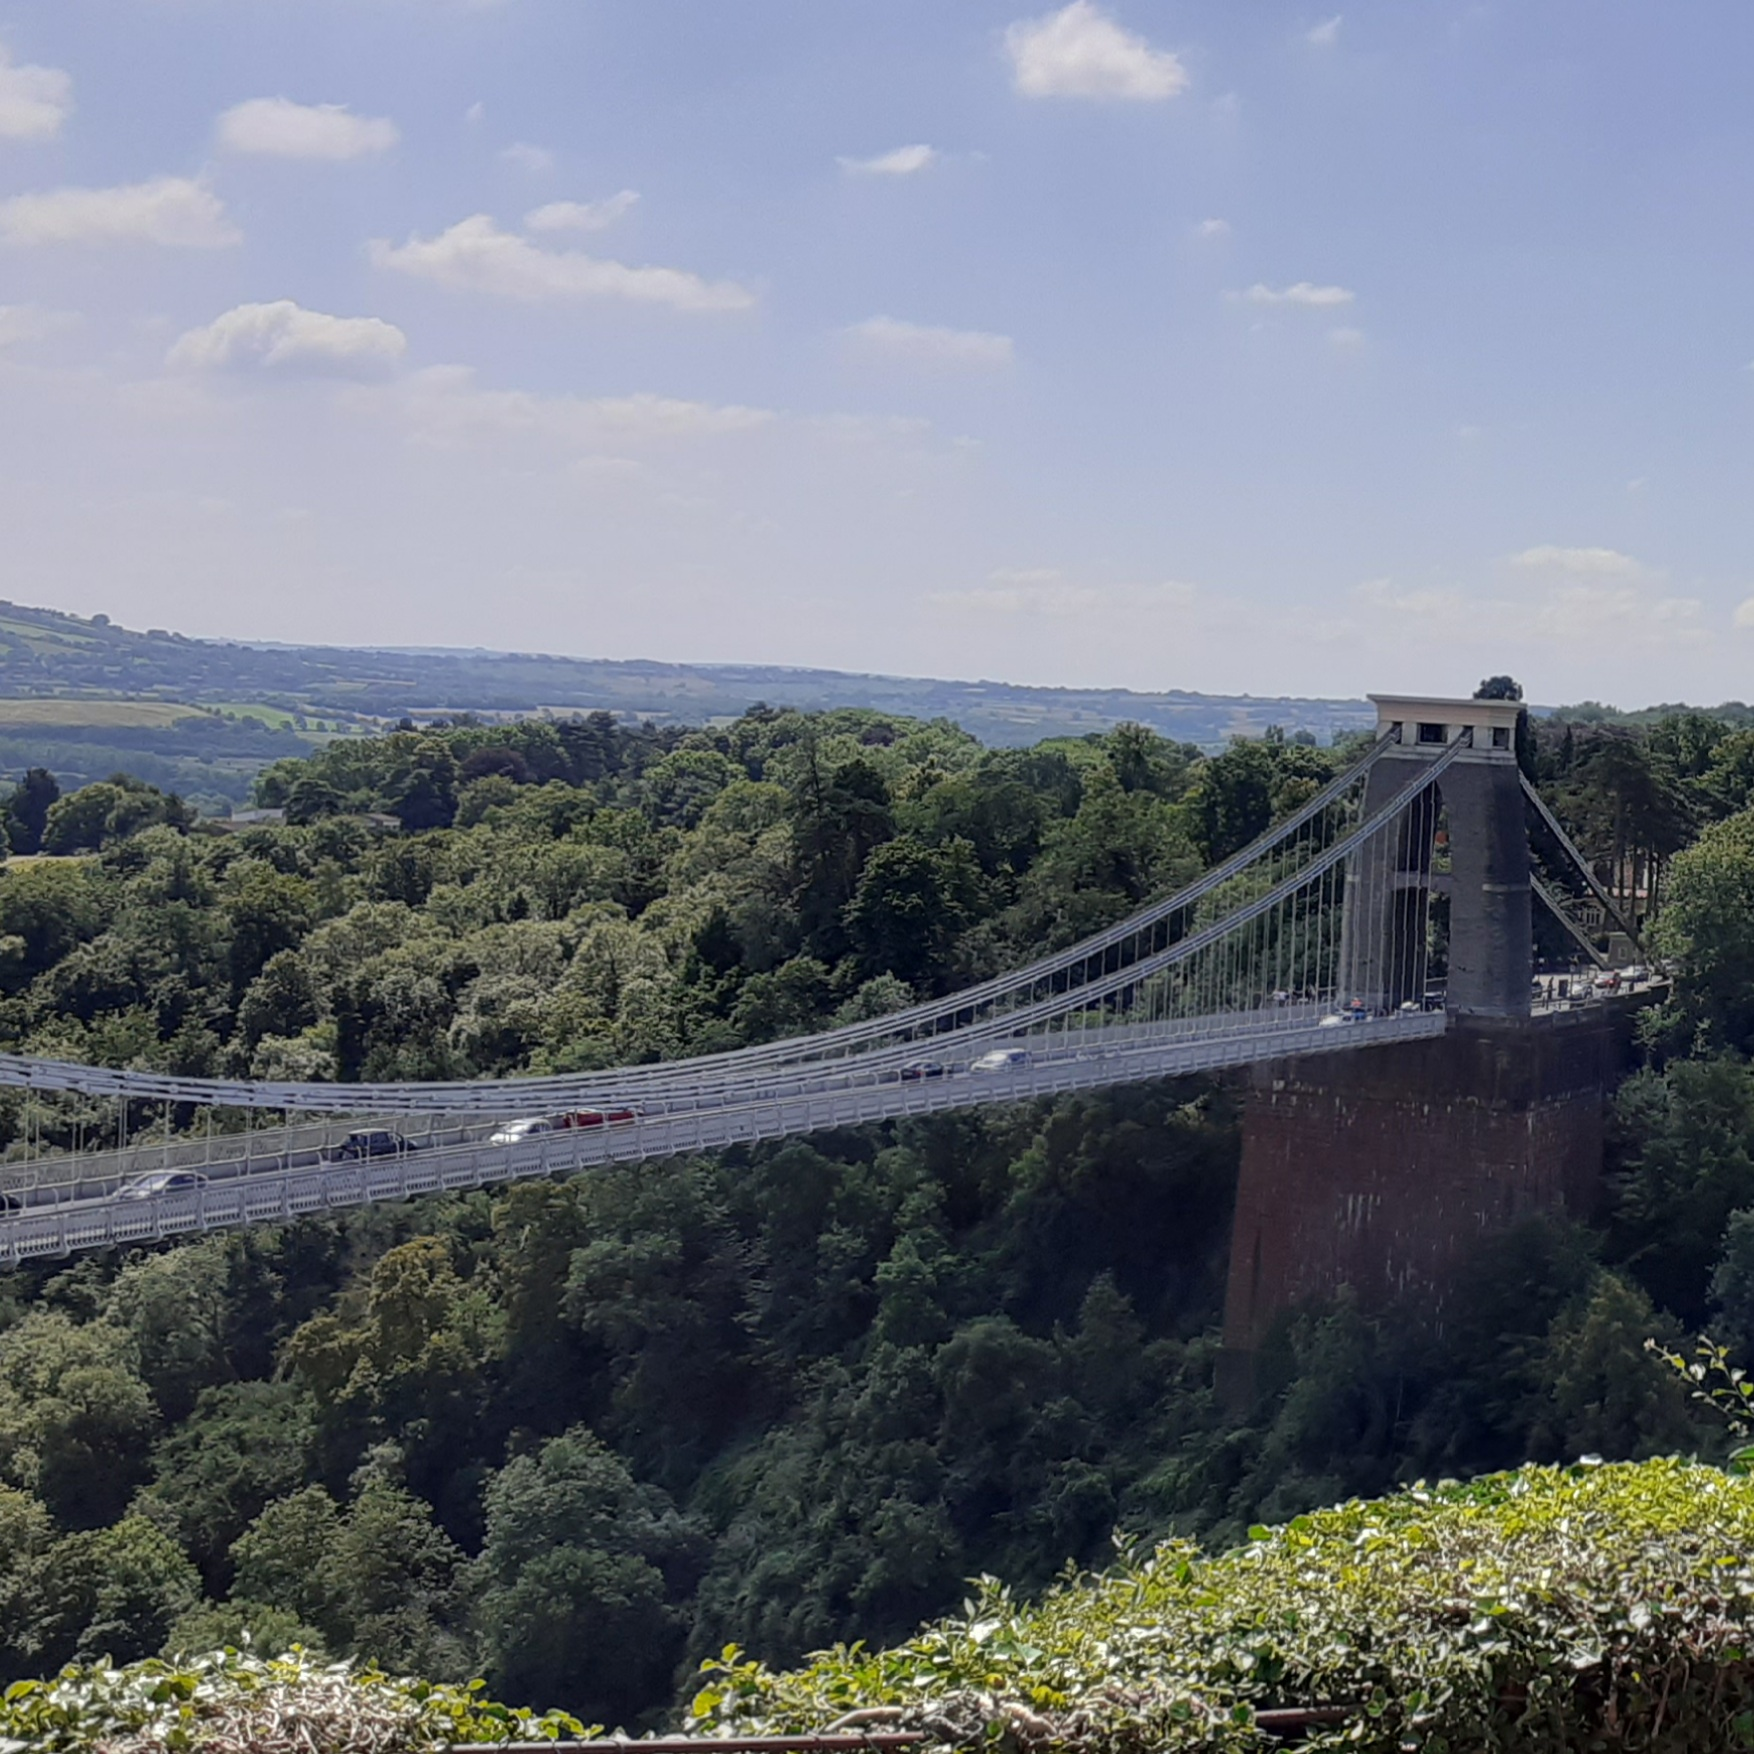 The Clifton suspension bridge with woods on either side.